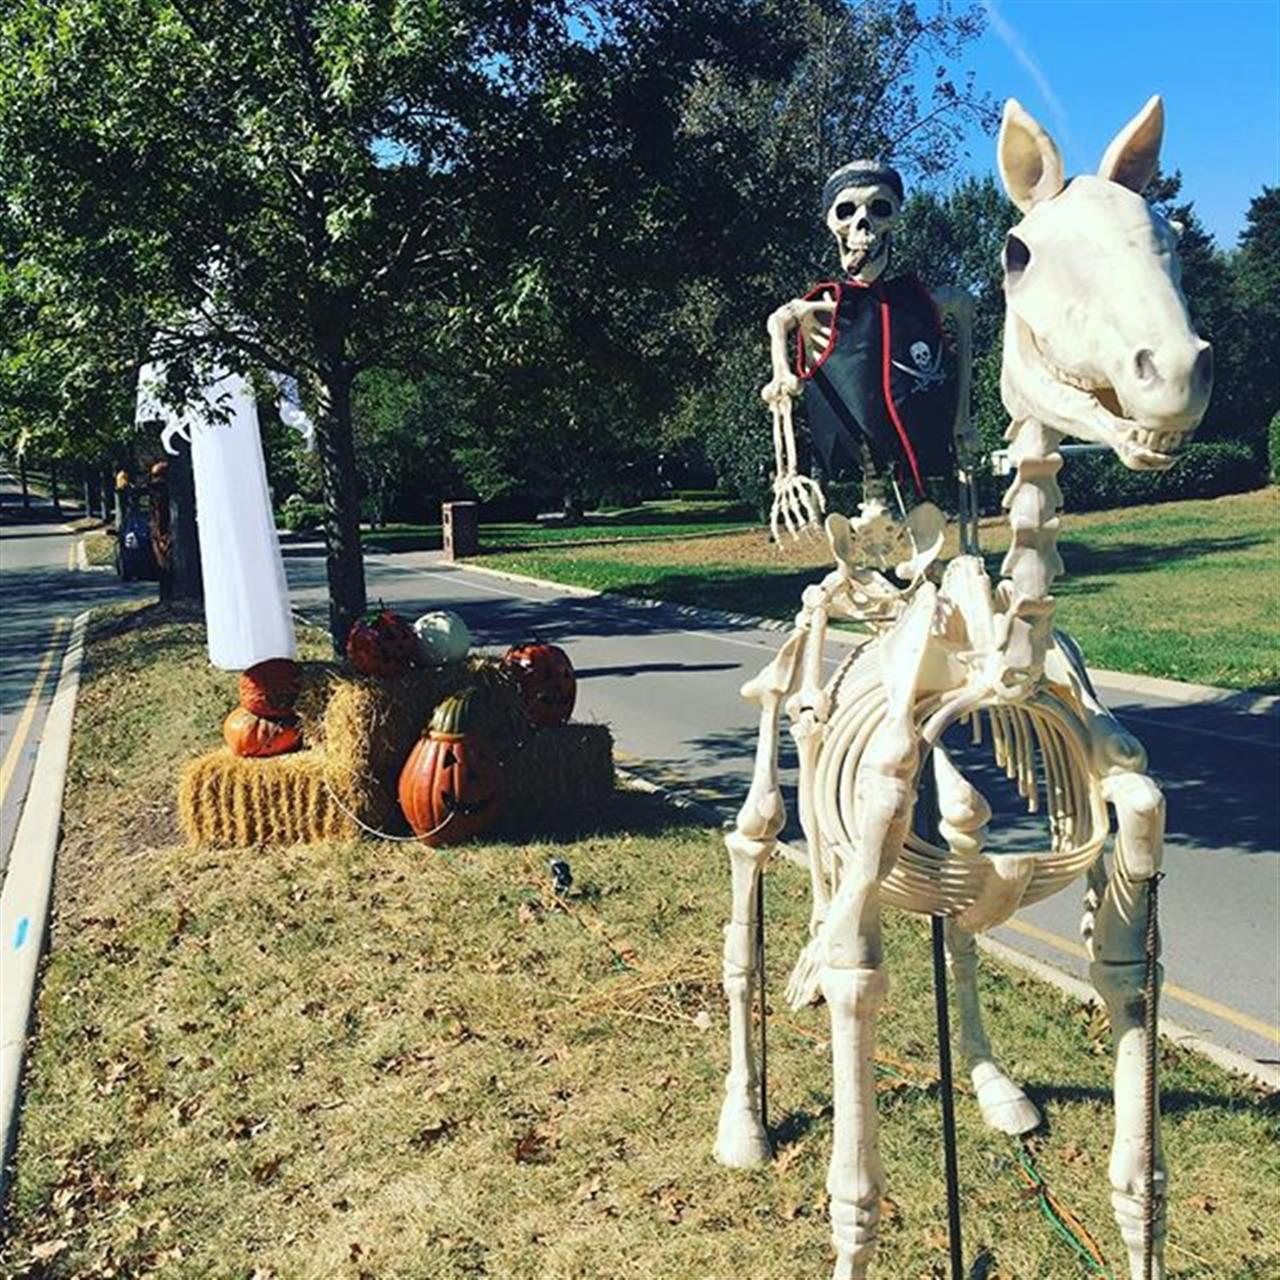 Halloween is only a week away and many neighborhoods are getting in the spirit! ?? #halloween #middletennessee #nashvillerealestate #leadingrelocal